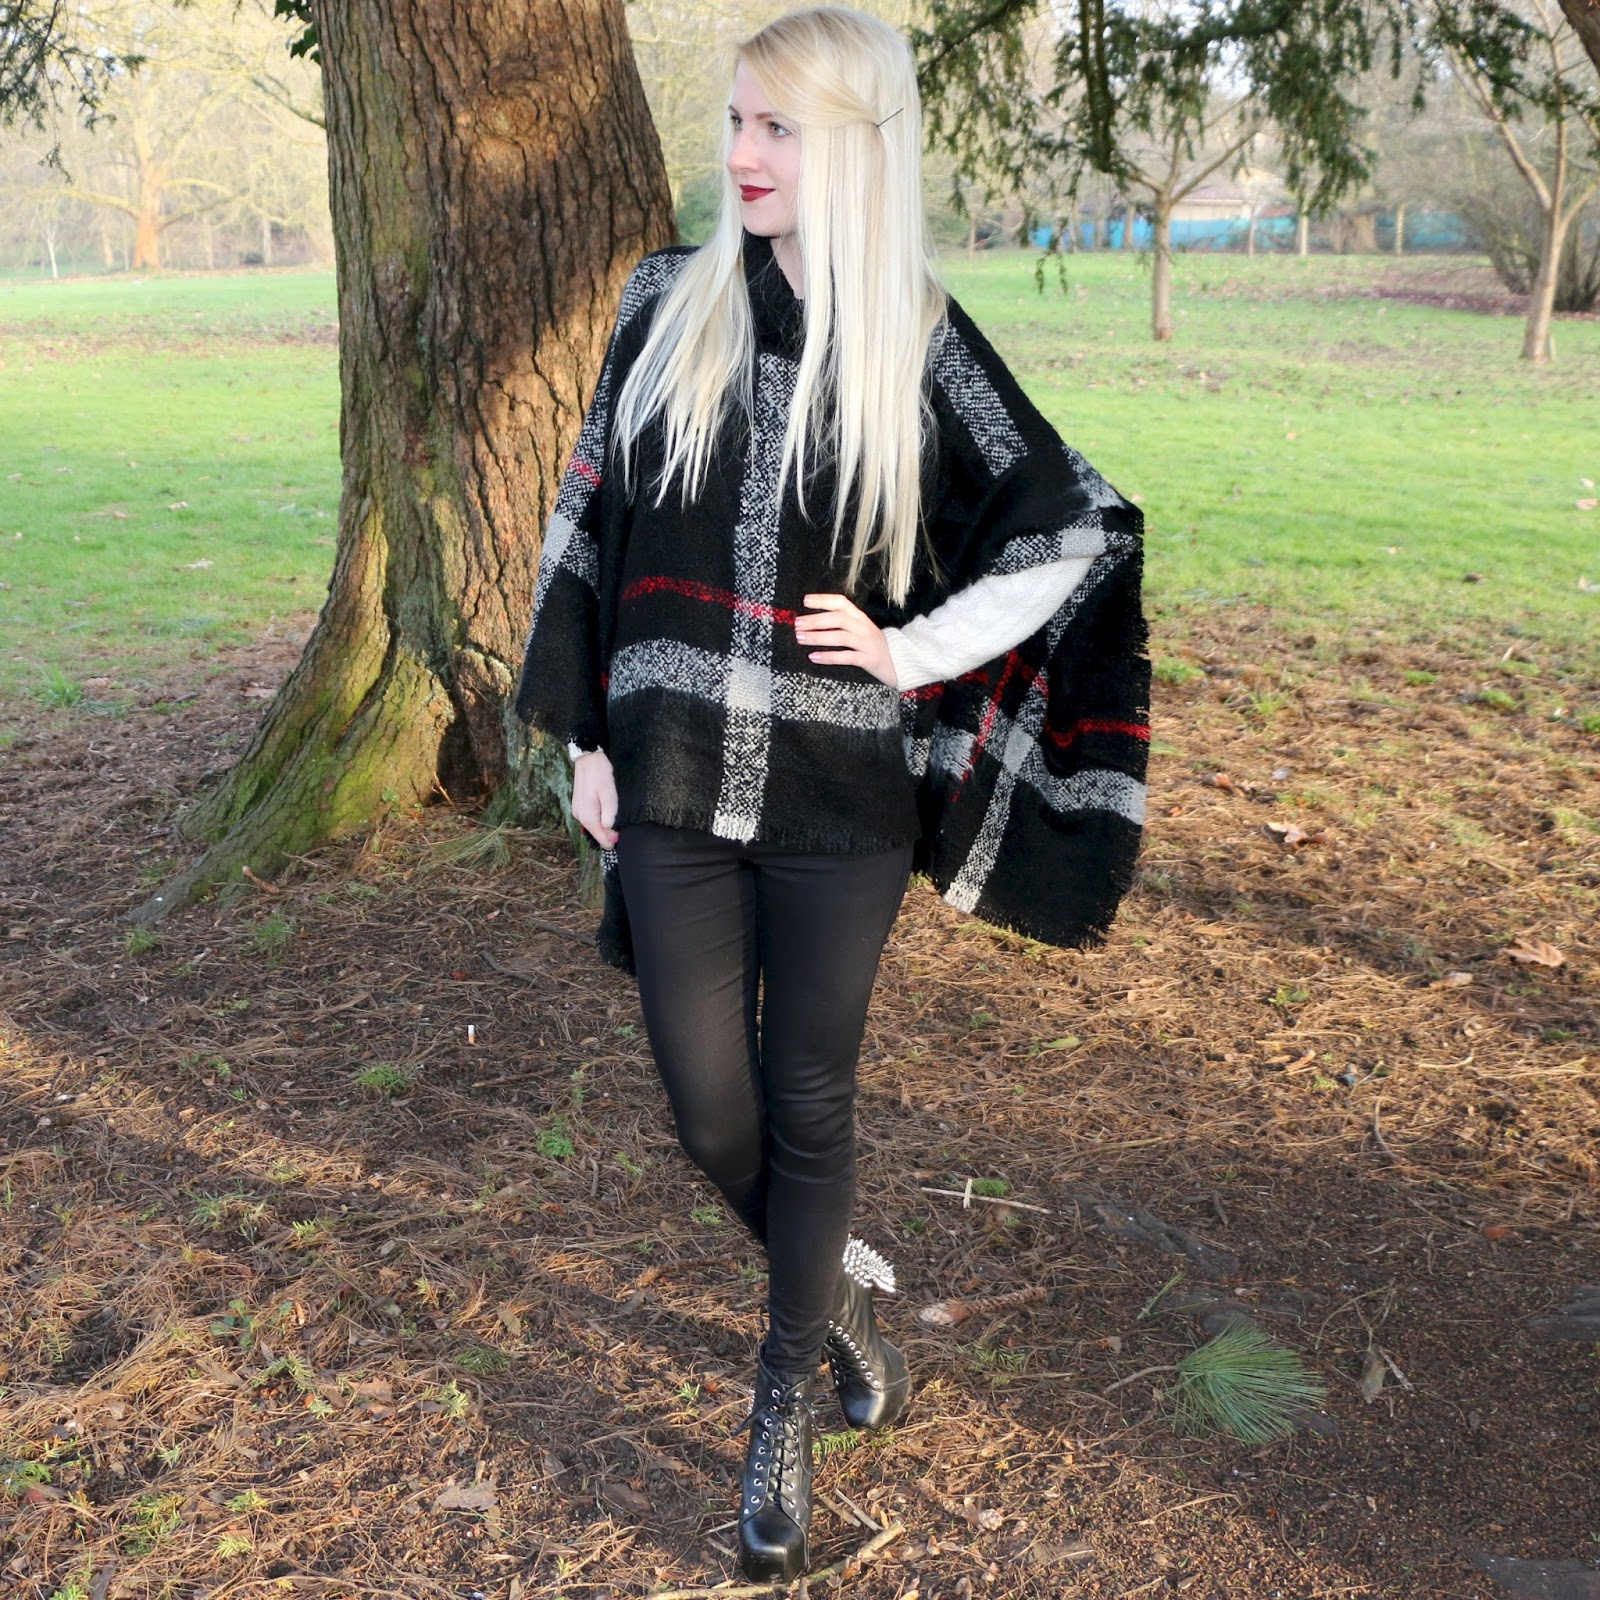 OOTD: Checked Poncho, Black Joni Jeans & Jeffrey Campbell Lita Spike Boots